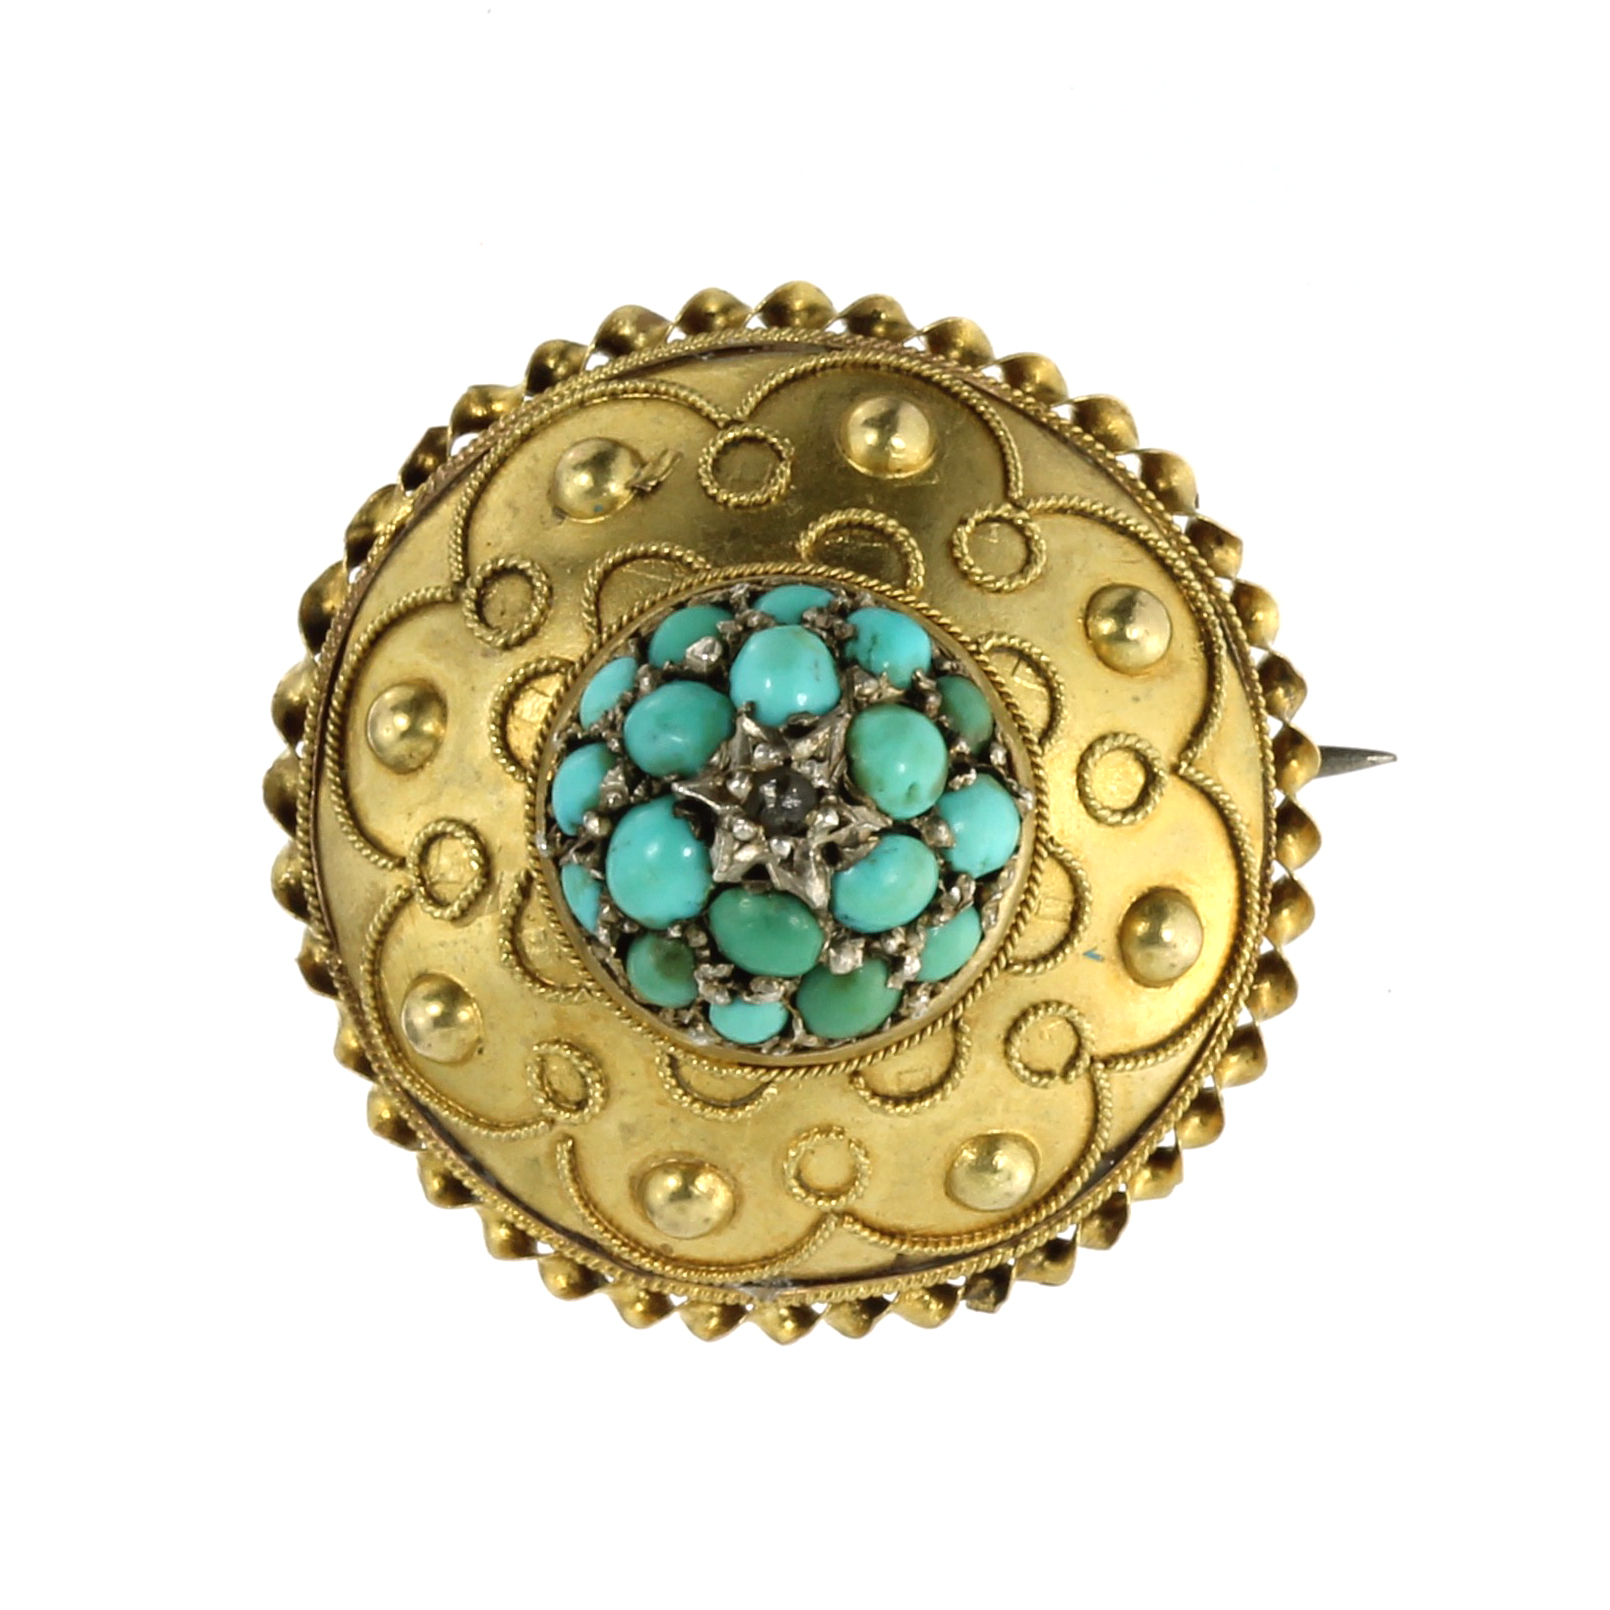 Los 22 - AN ANTIQUE TURQUOISE AND DIAMOND MOURNING BROOCH in 15ct yellow gold, of circular form, set with a